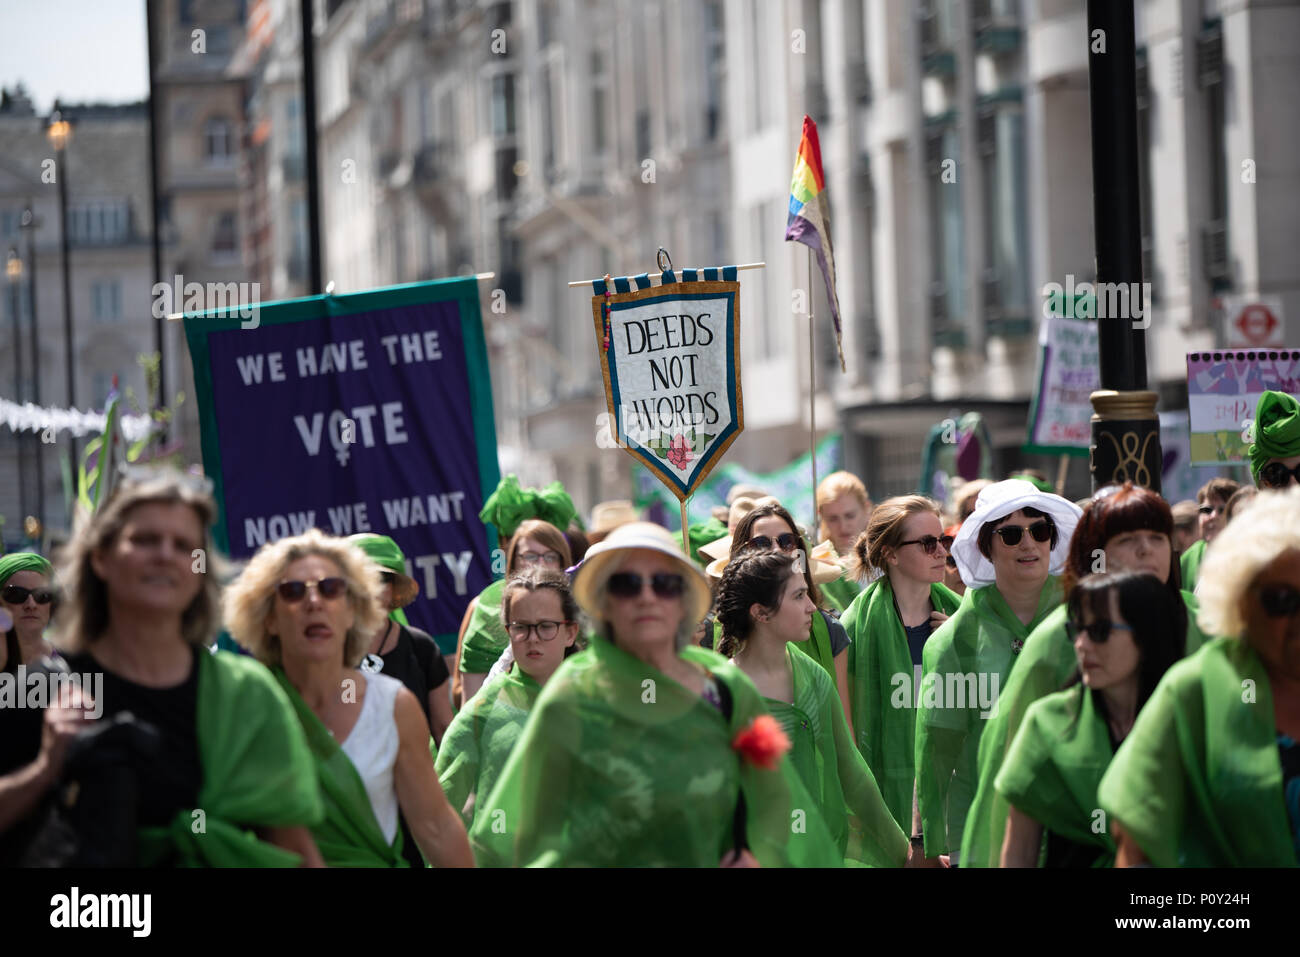 Women marching through London to mark 100 years since the first British women won the vote. Women donned the colours of the suffragette movement - green, white and purple - as part of a mass procession. - Stock Image